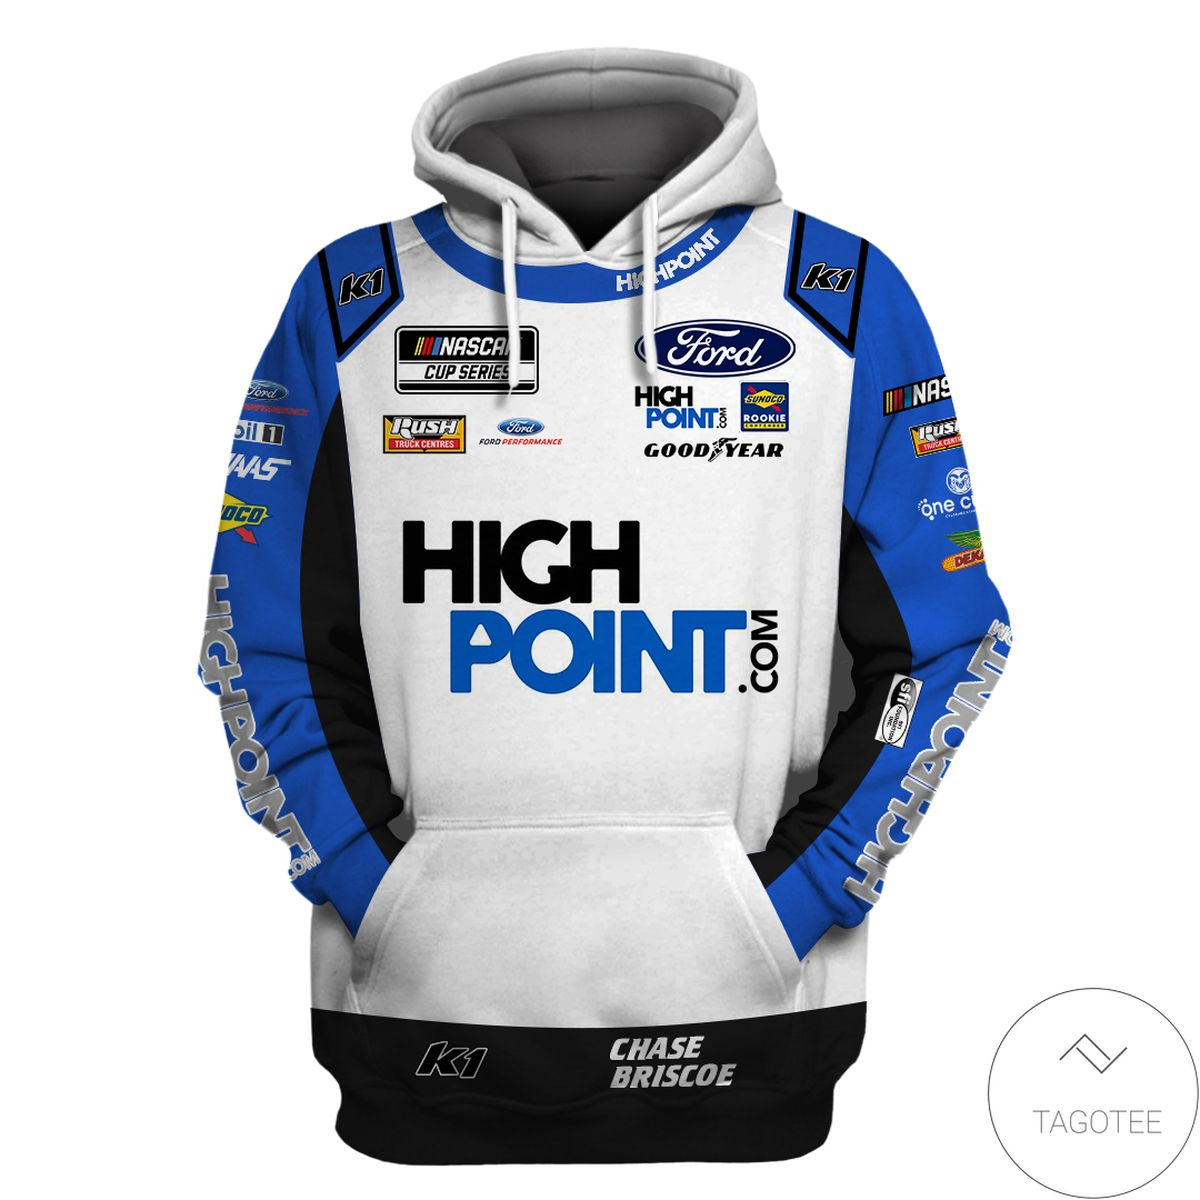 Chase Briscoe High Point Hoodie